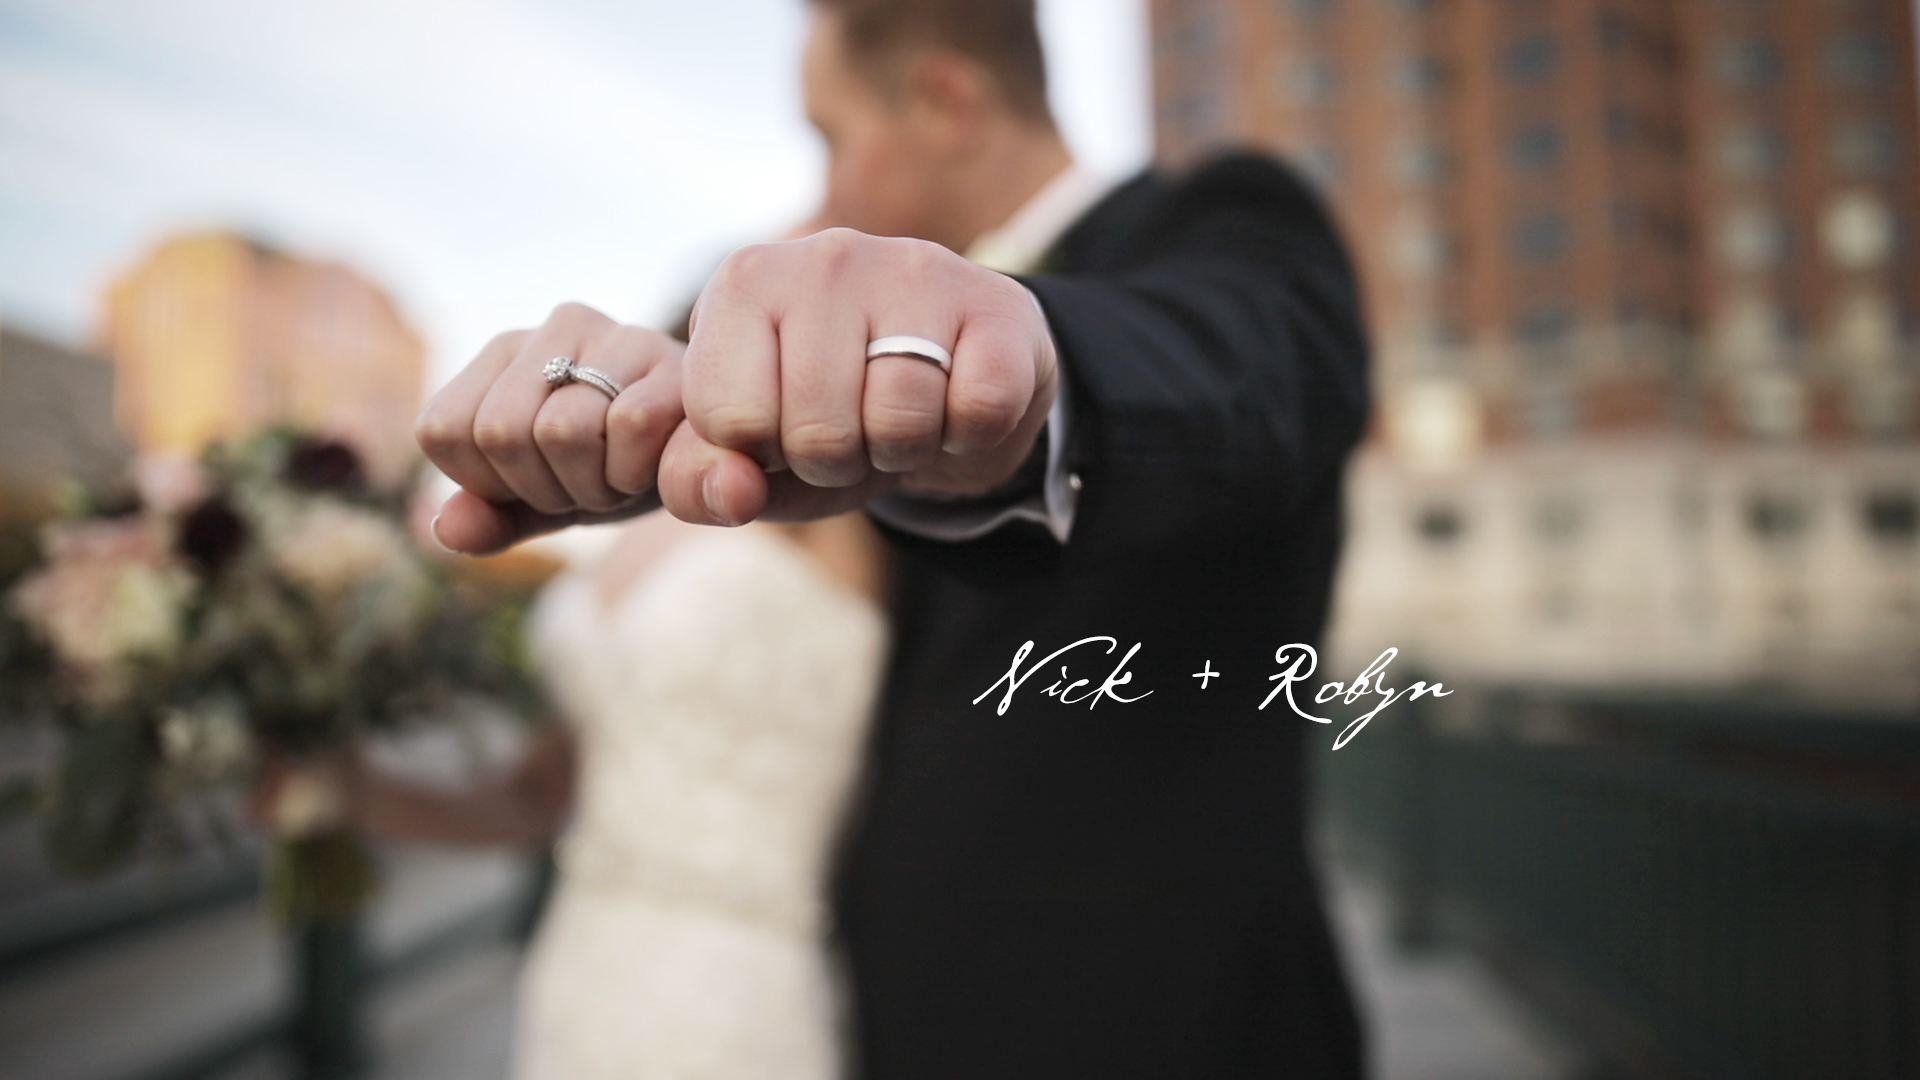 Nick + Robyn | Milwaukee, Wisconsin | Milwaukee County Historical Society